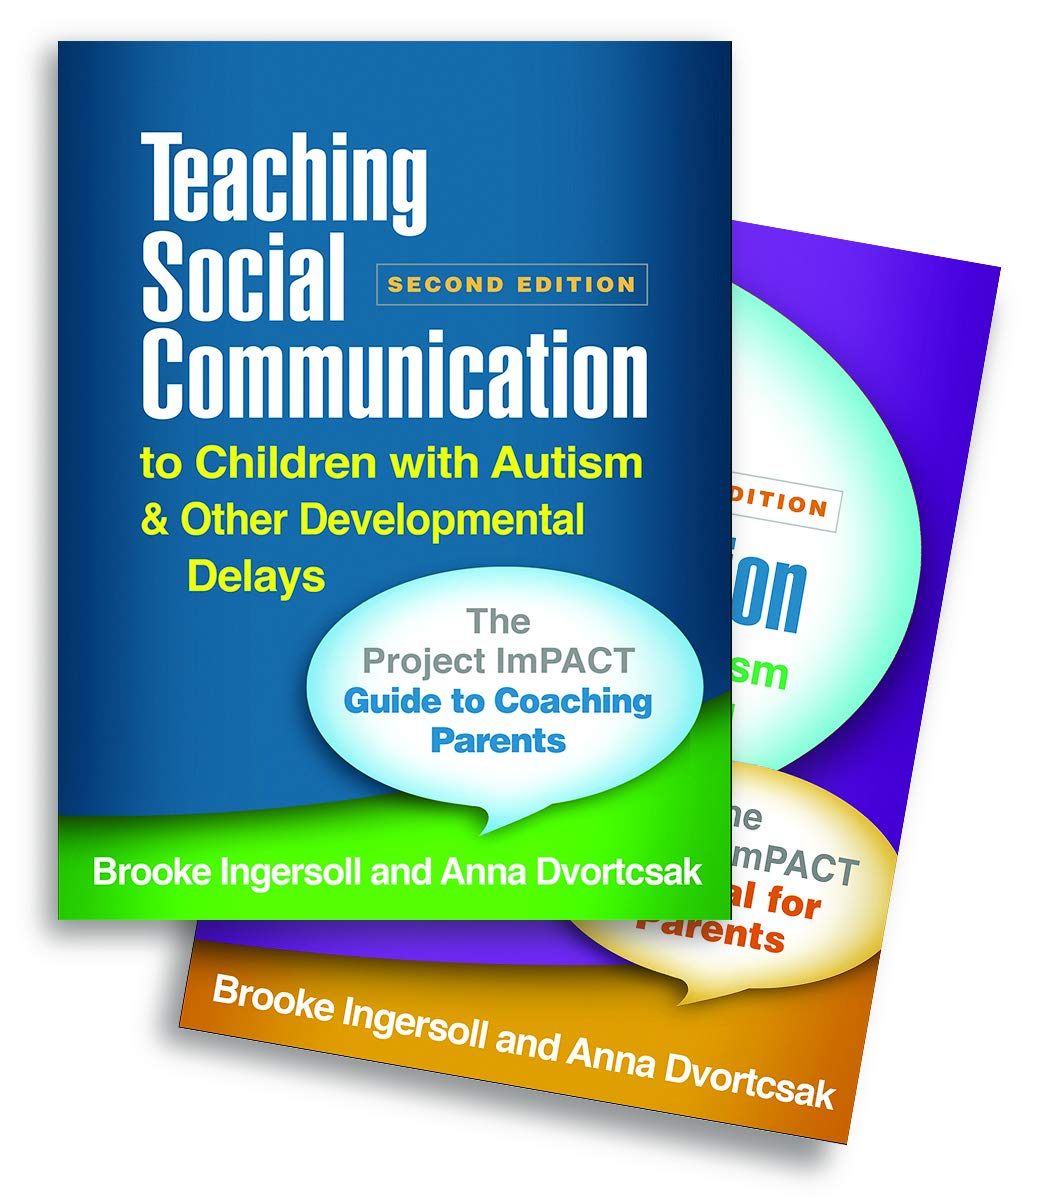 Teaching Social Communication to Children with Autism and Other Developmental Delays (2-book set), Second Edition: The Project ImPACT Guide to ... and The Project ImPACT Manual for Parents by The Guilford Press